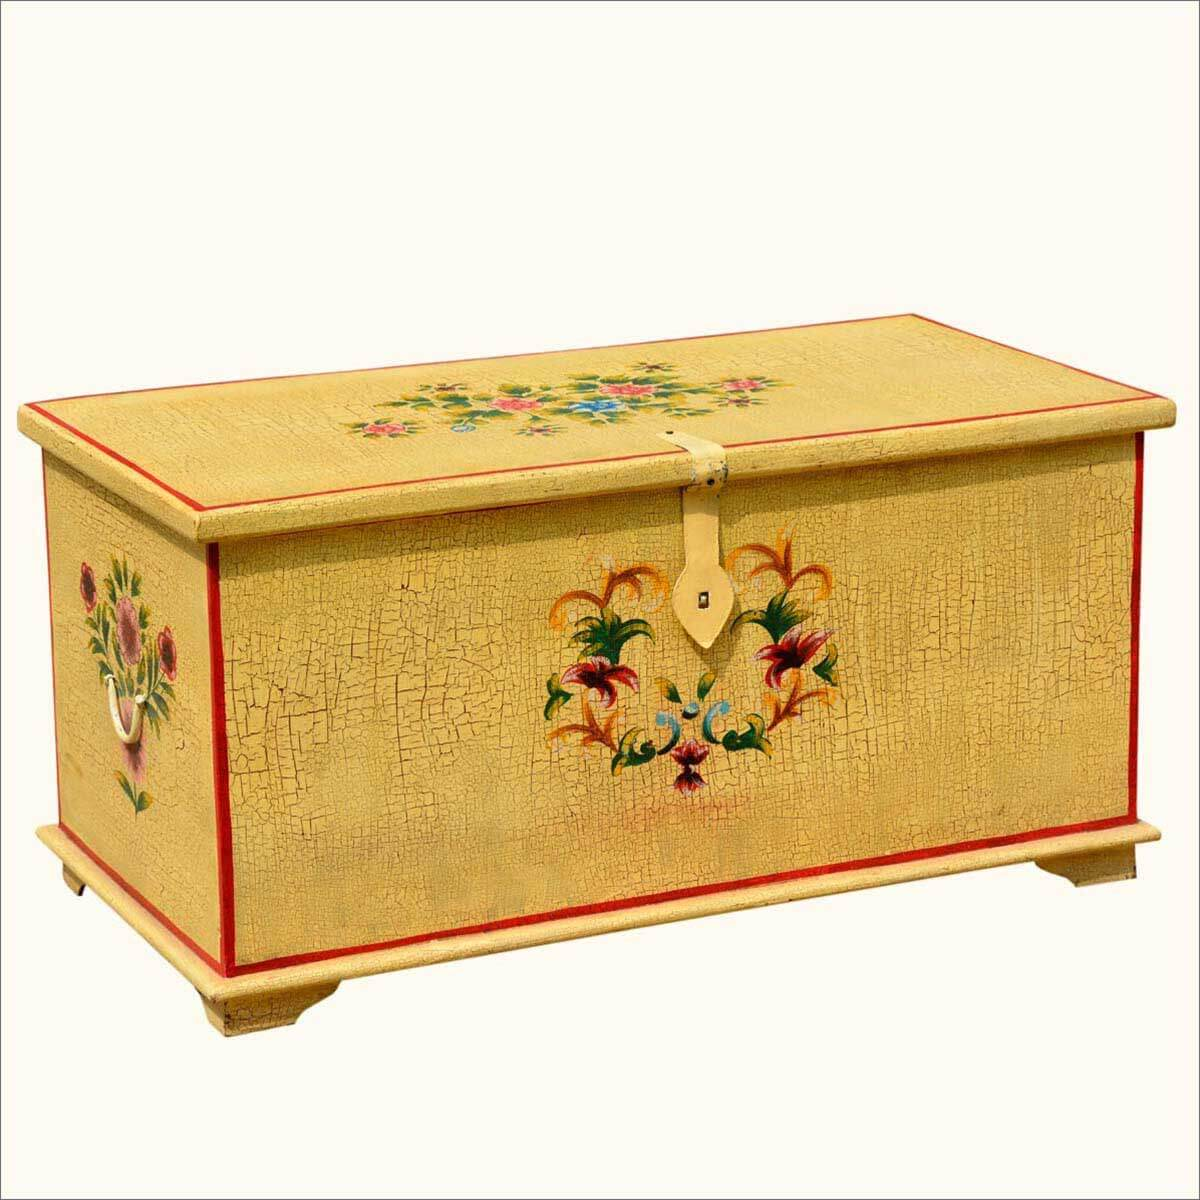 Whimsy wood distressed hand painted storage trunk